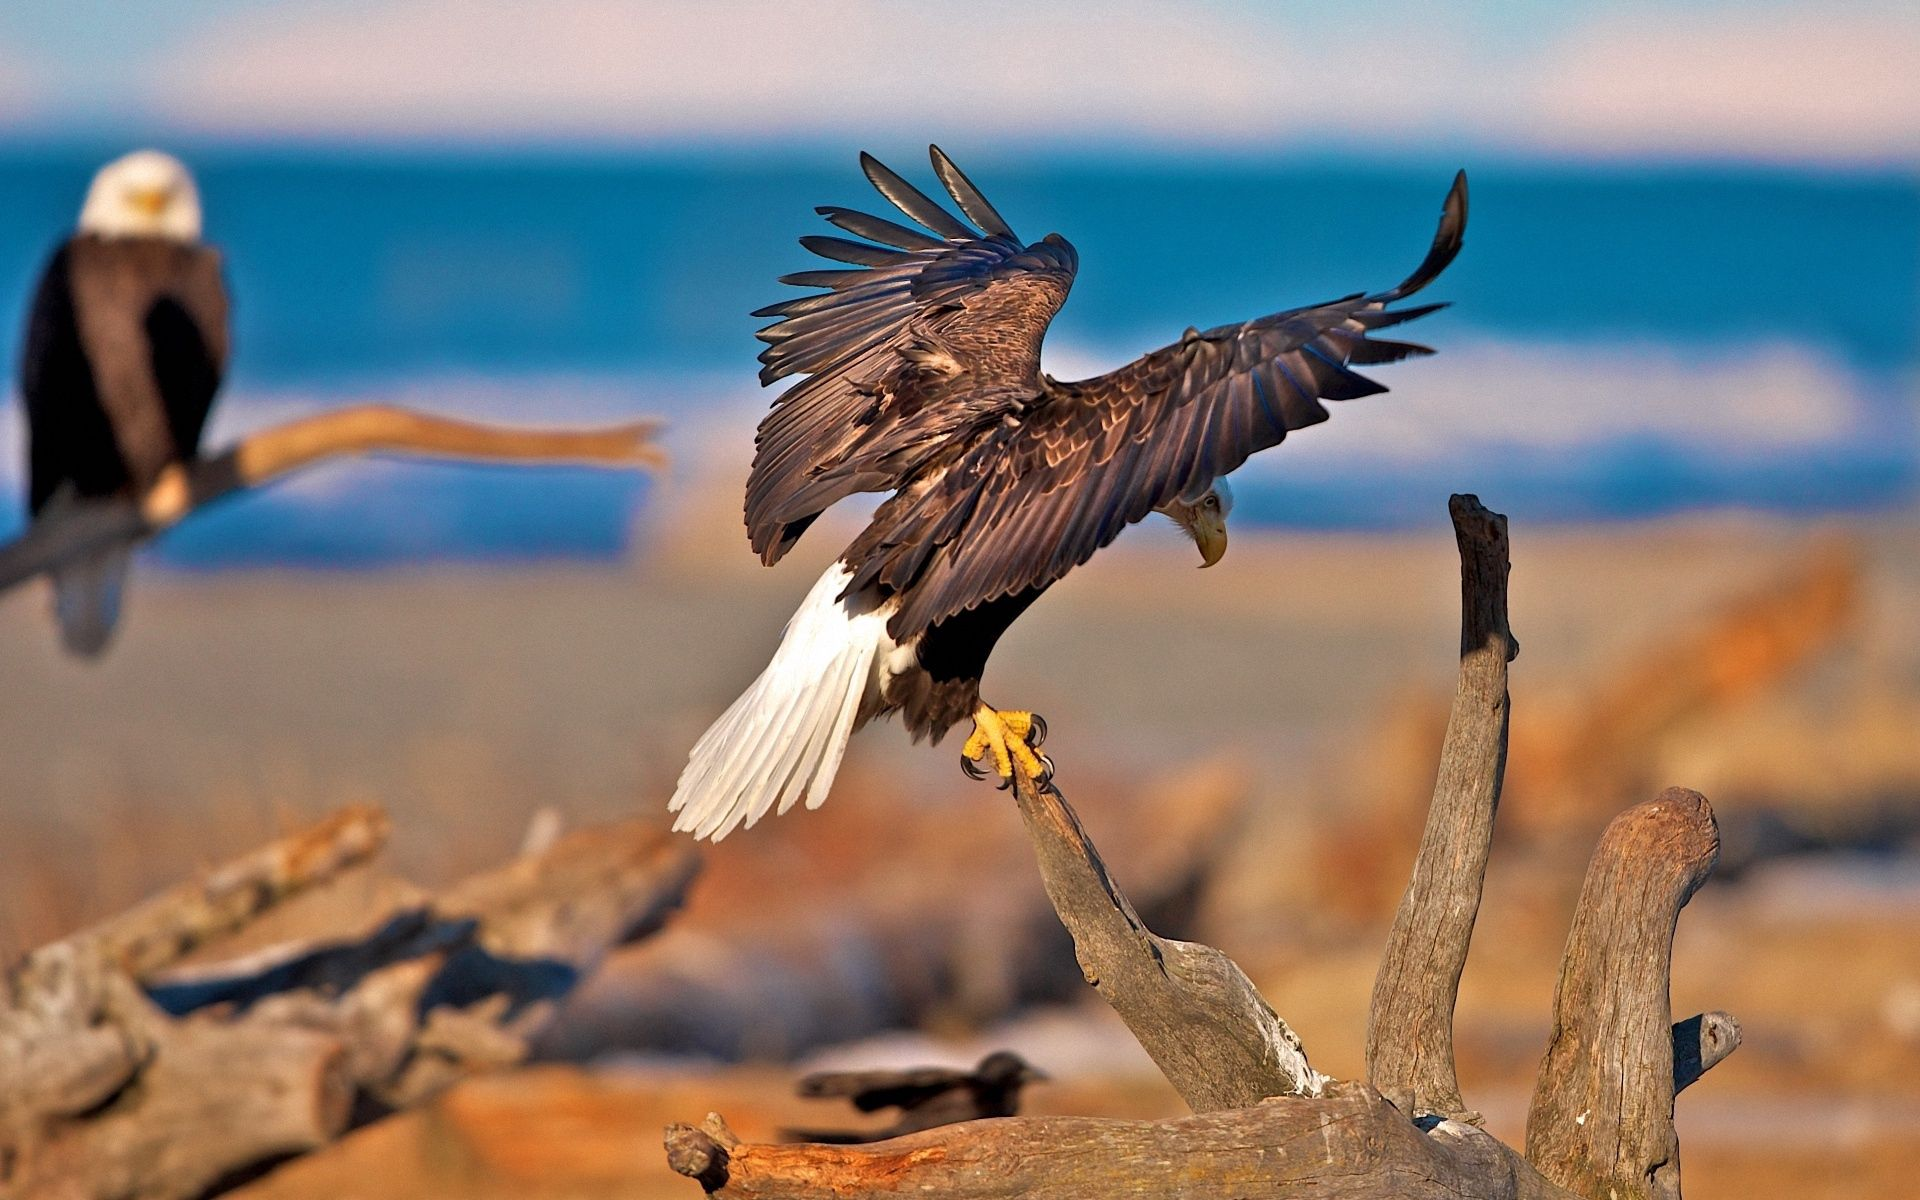 75823 download wallpaper Animals, Branches, Sit, Sweep, Wave, Wings, Predators, Birds, Eagles screensavers and pictures for free